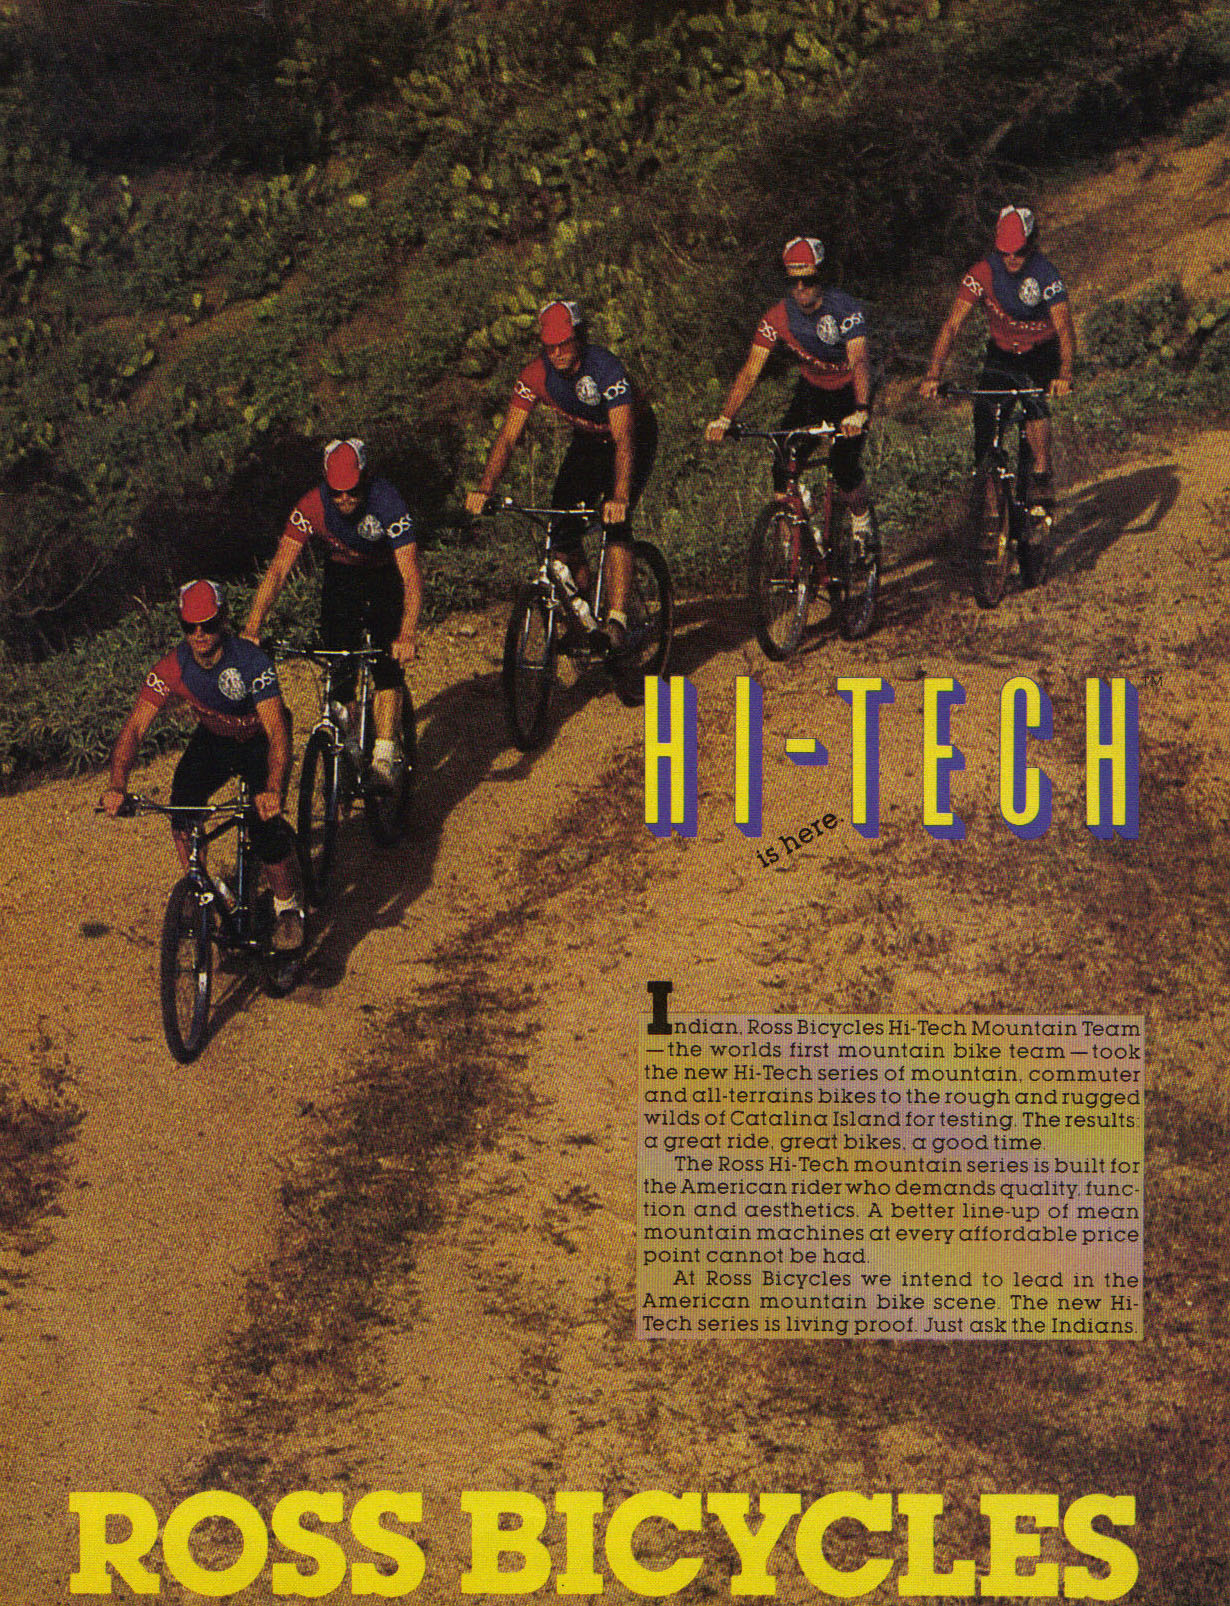 MOMBAT: Ross Bicycles History